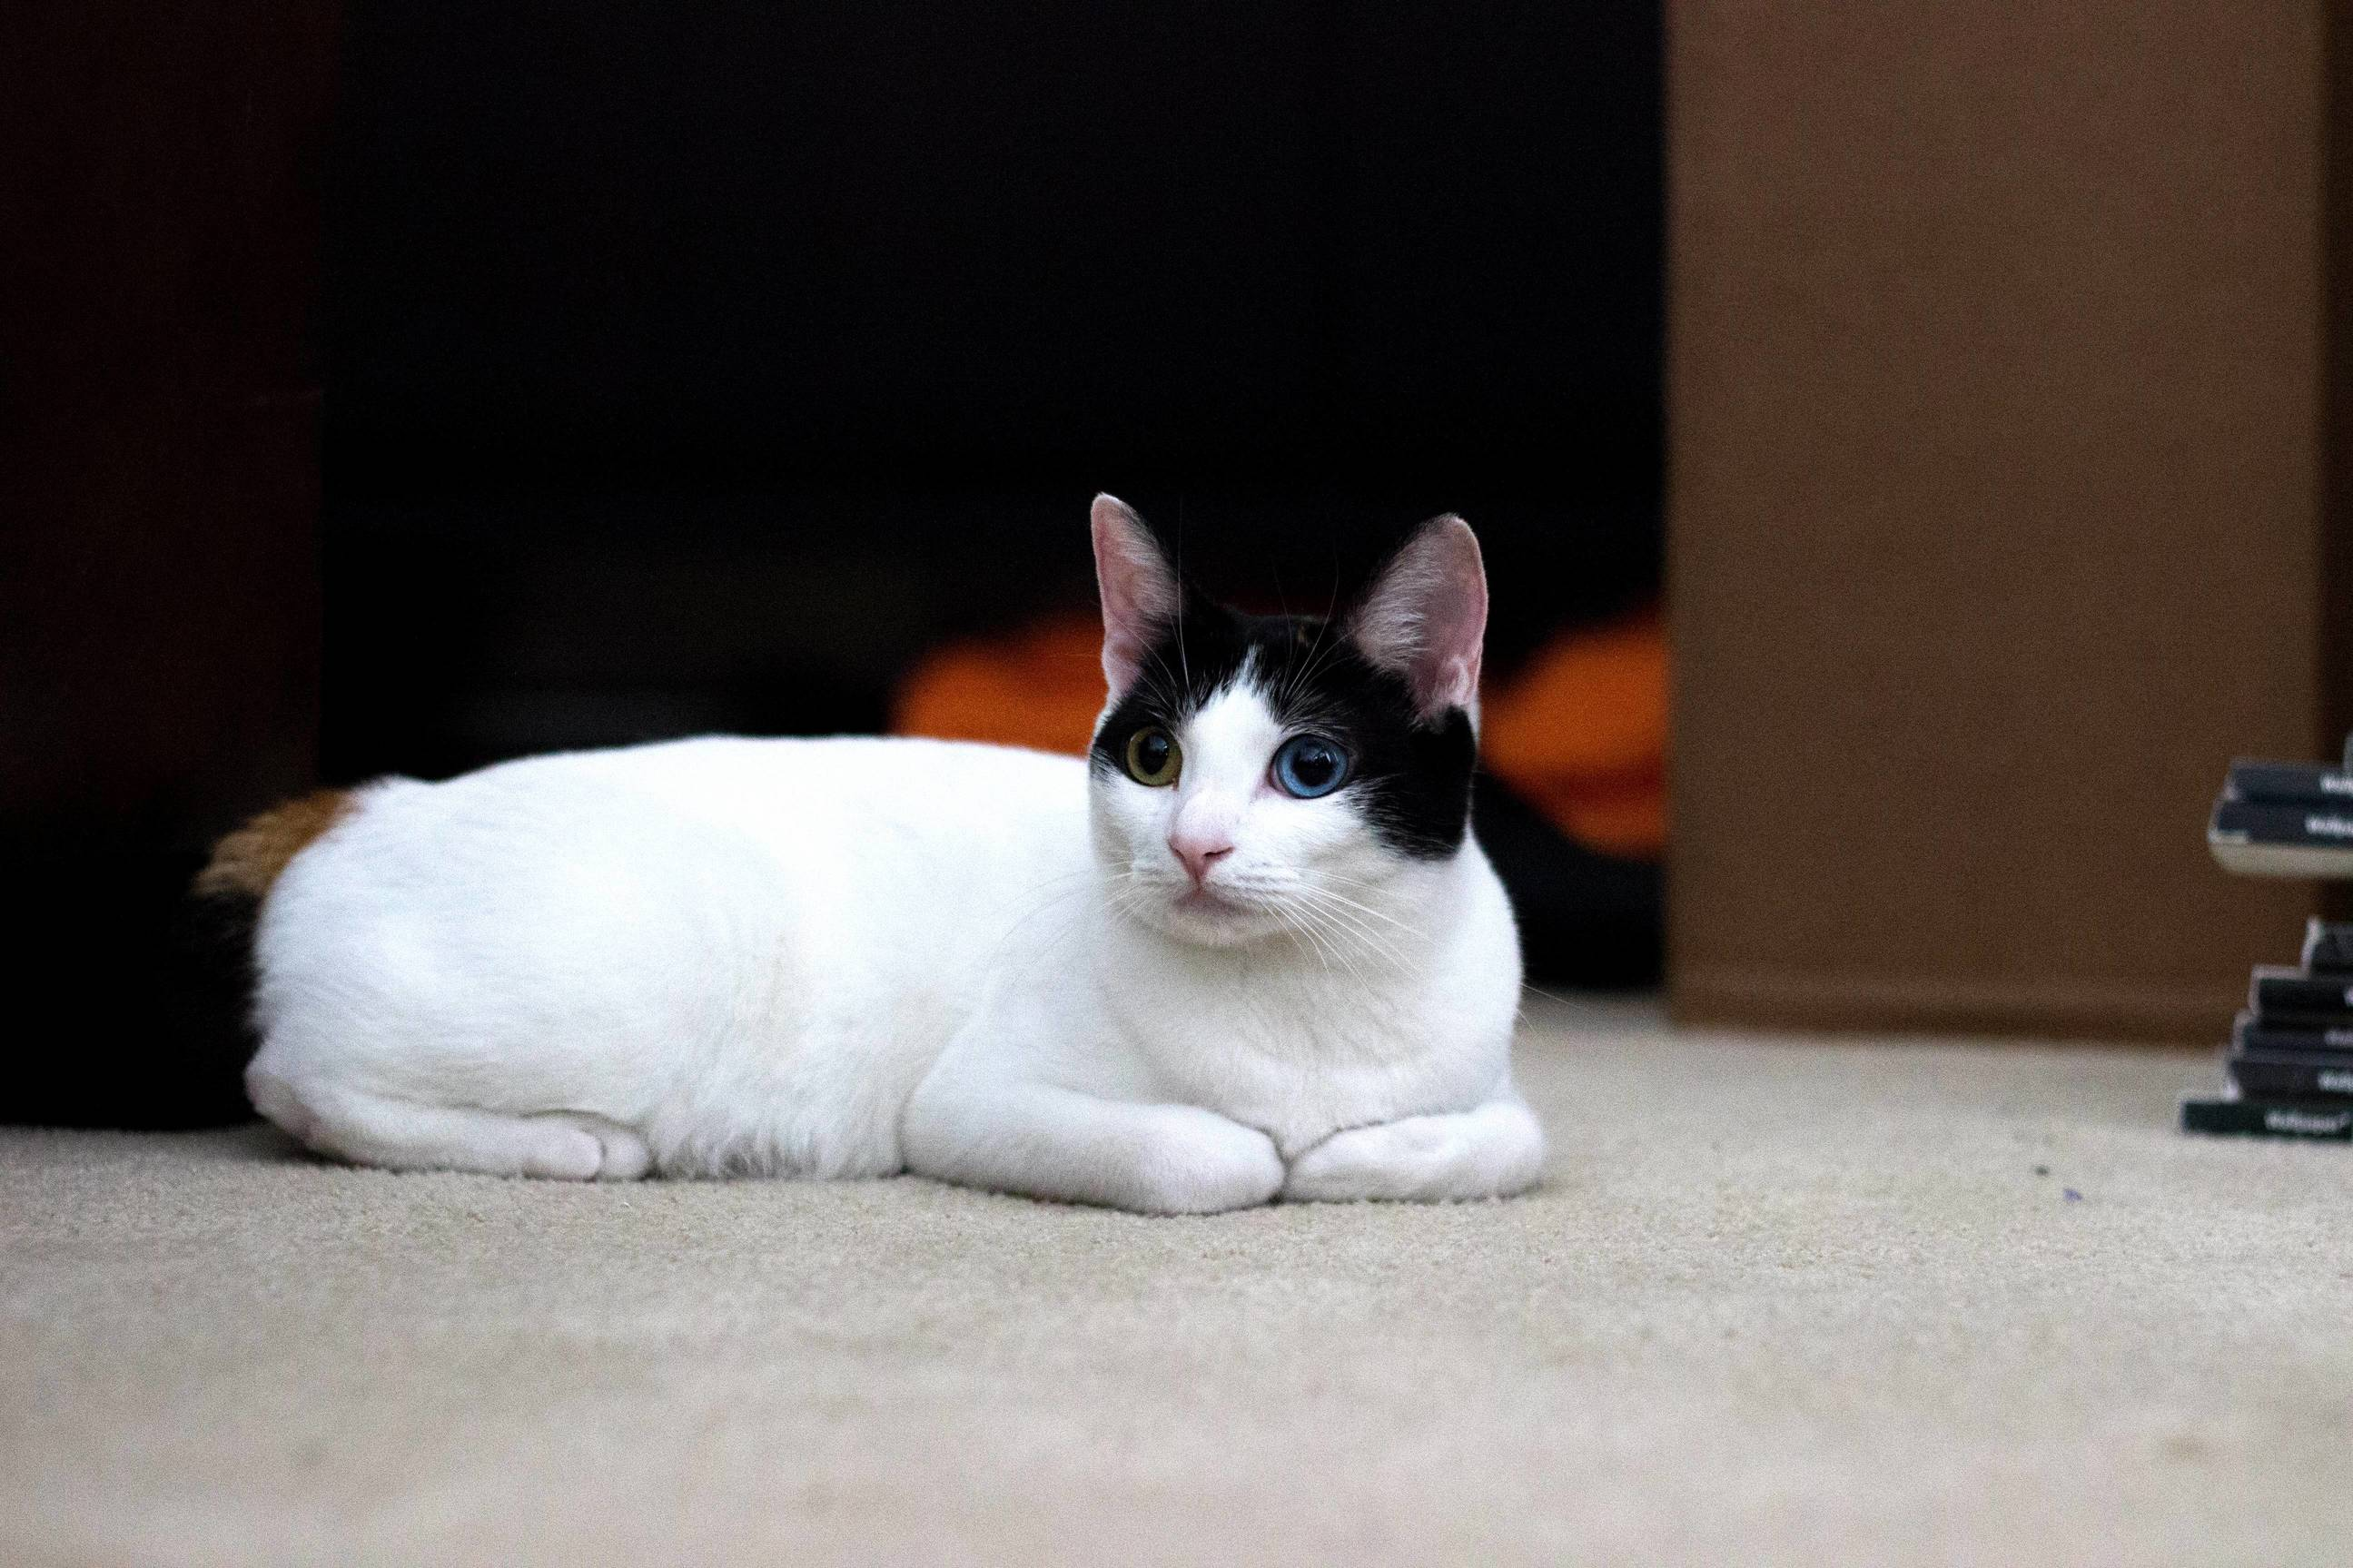 My friends japanese bobtail has different colored eyes